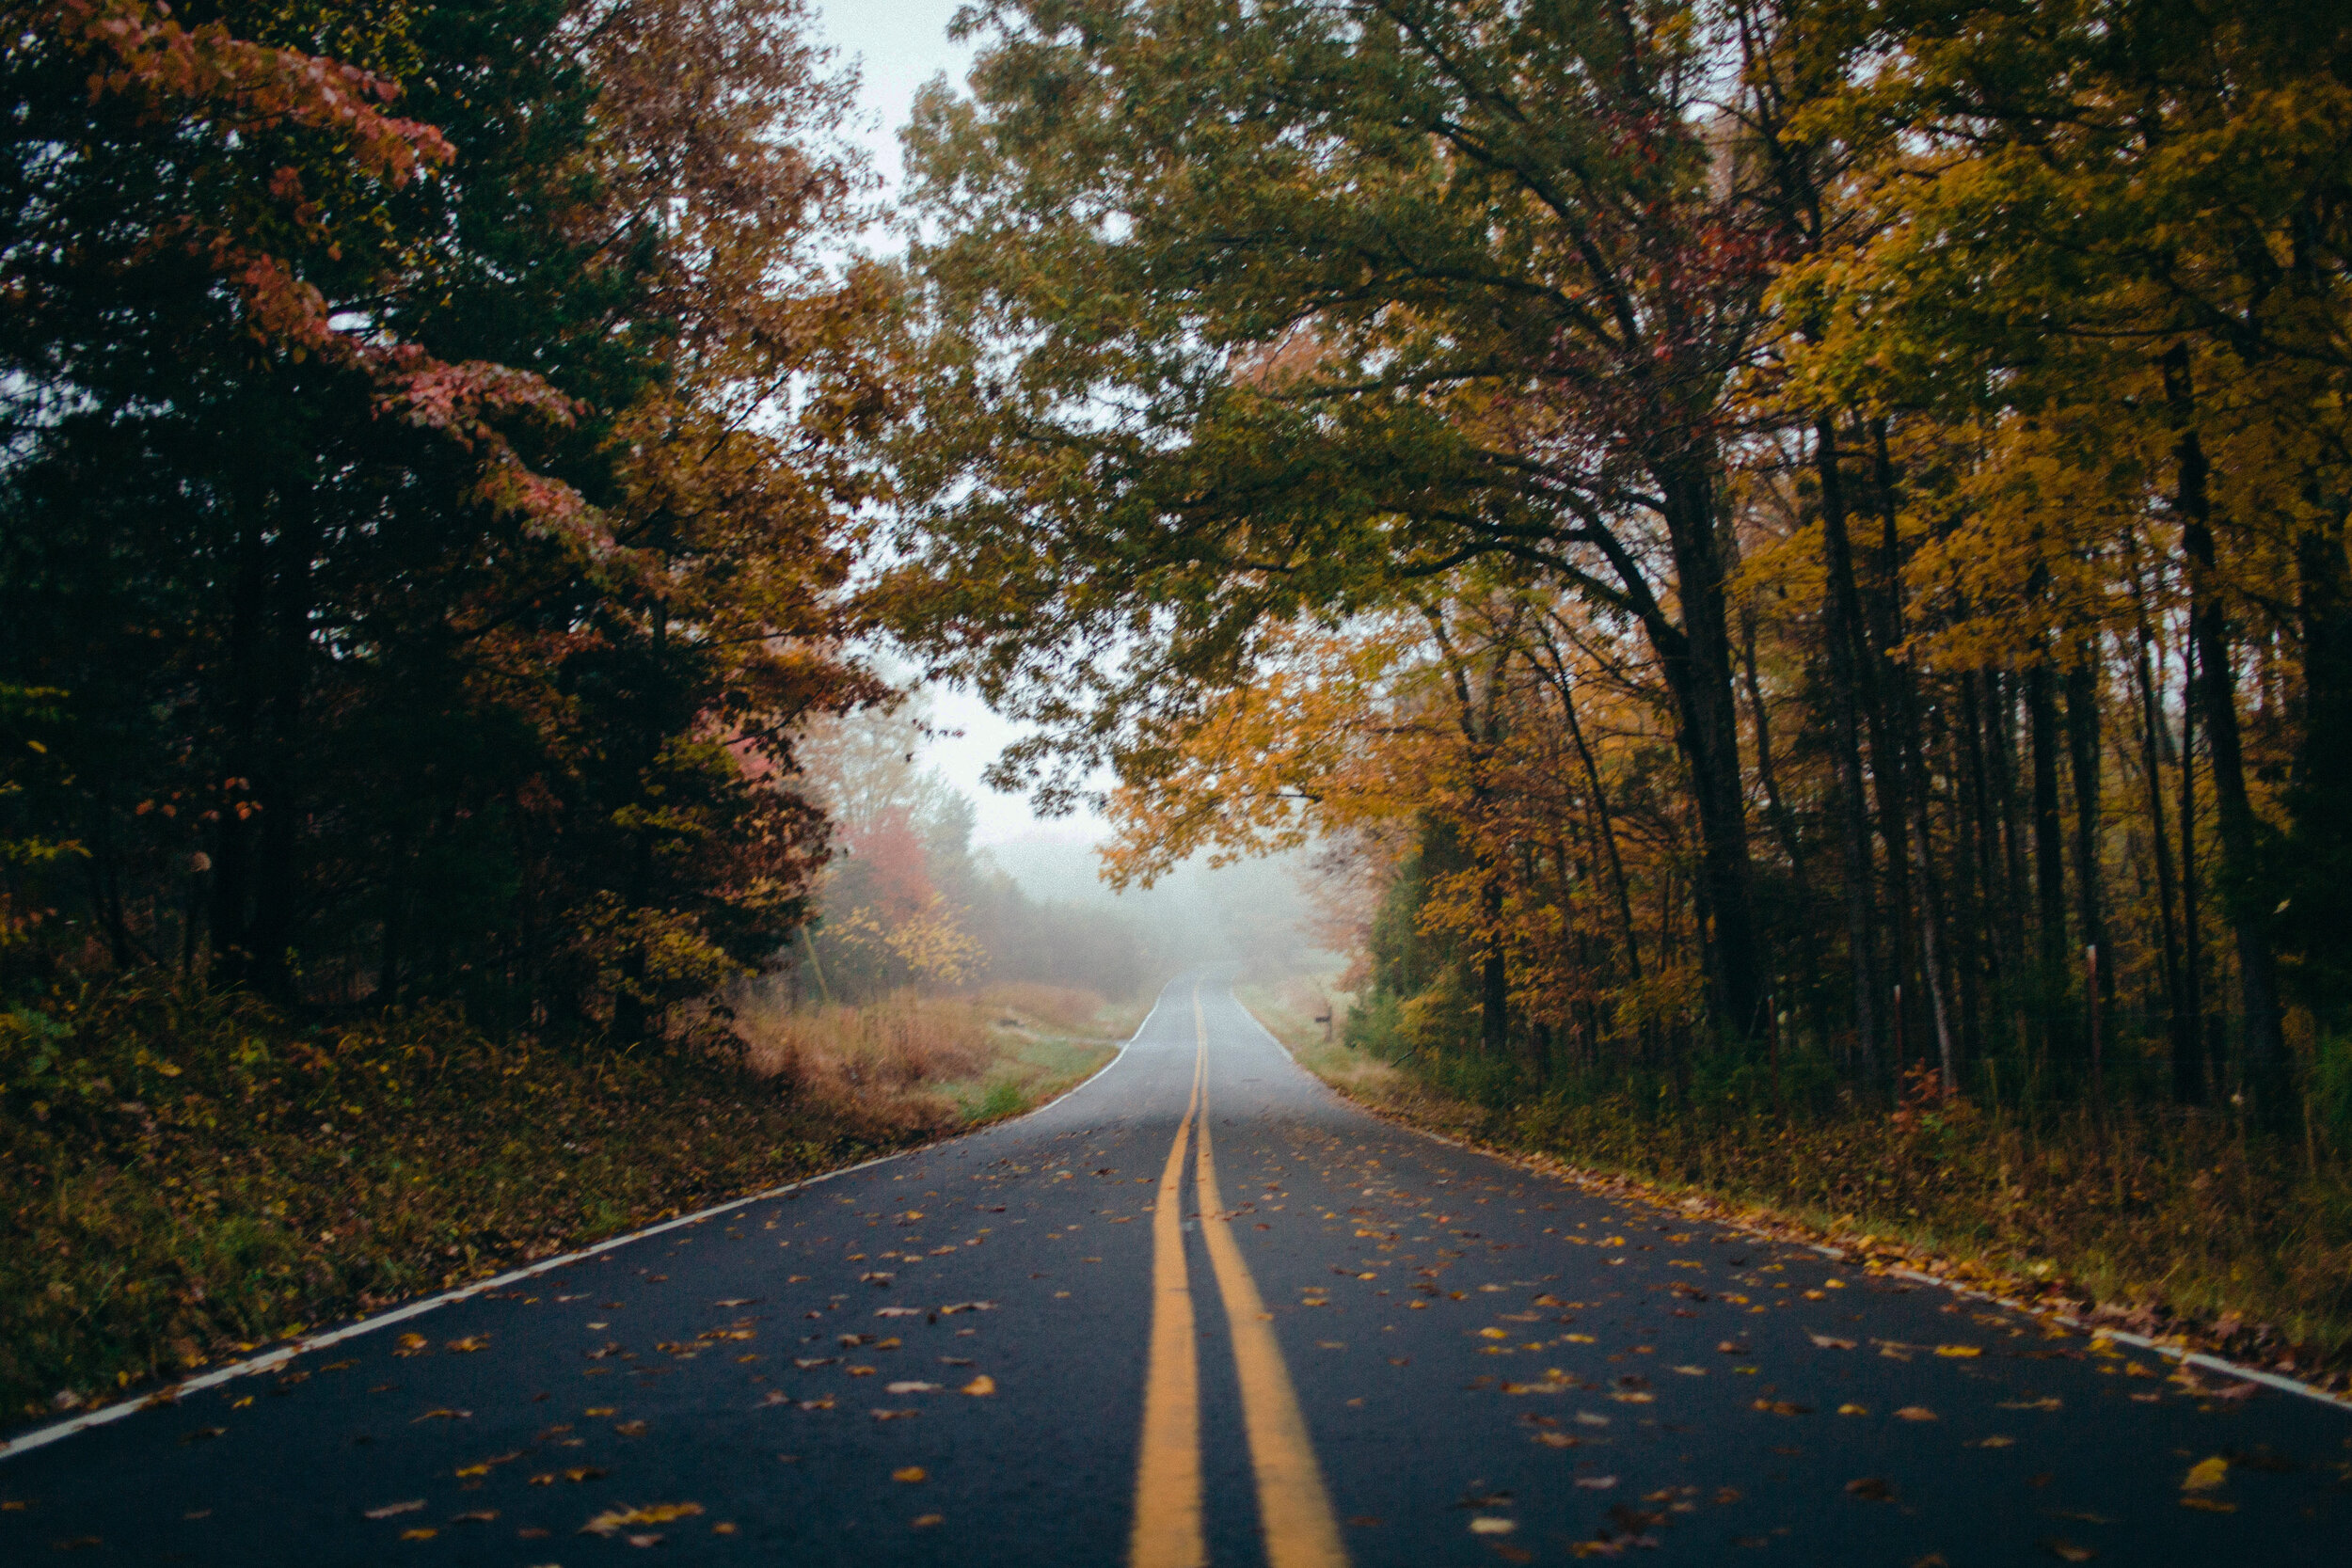 Plan your Fall road trip with this online leaf tracker